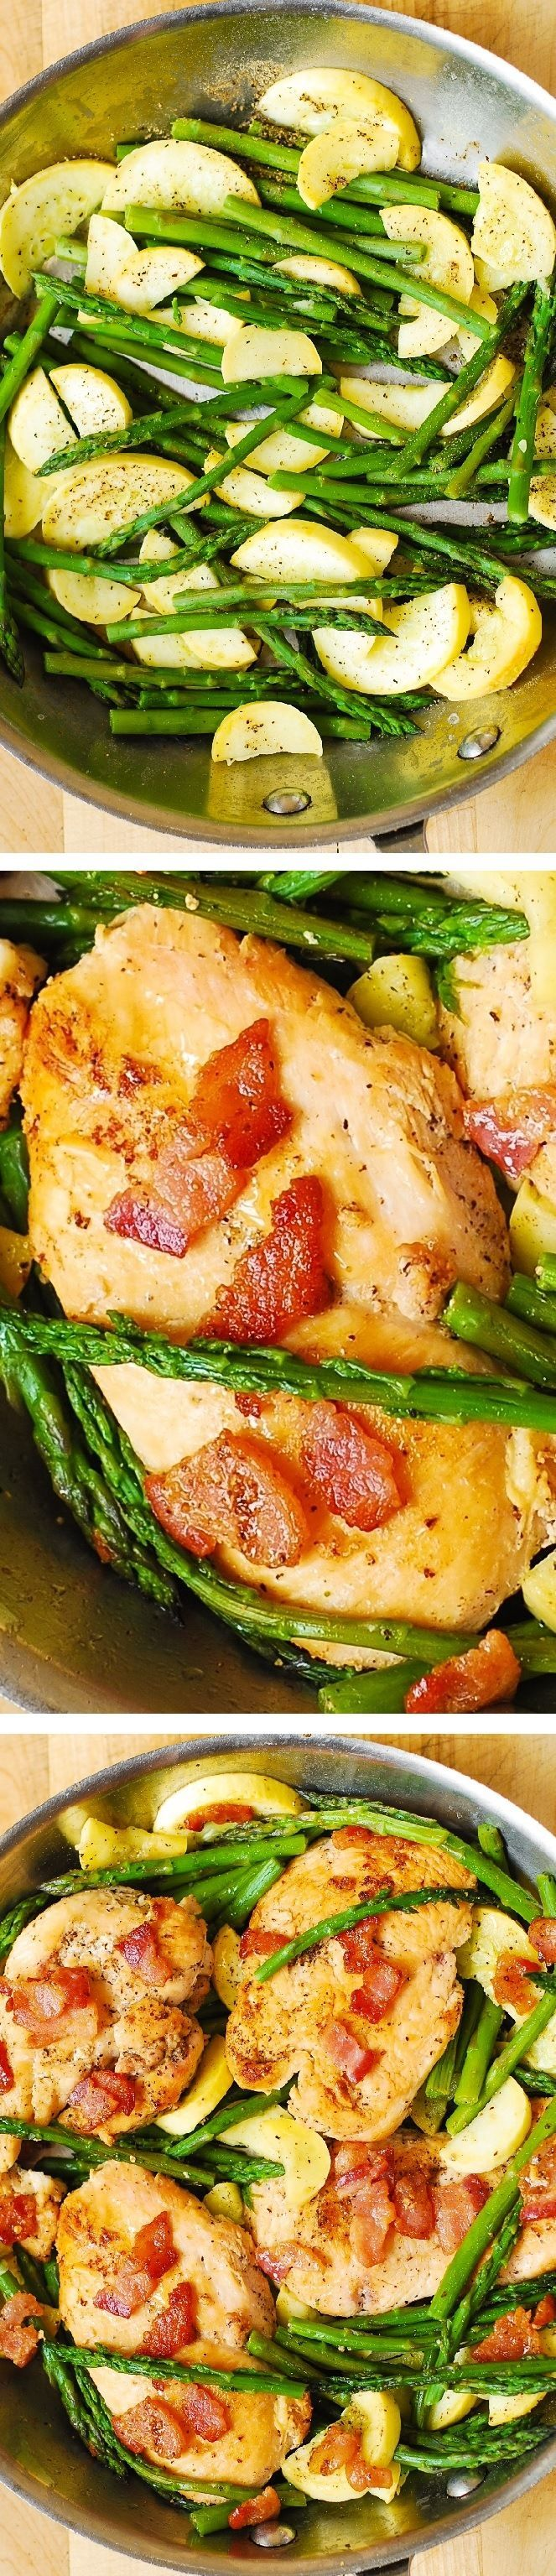 Chicken, Asparagus, And Bacon Skillet